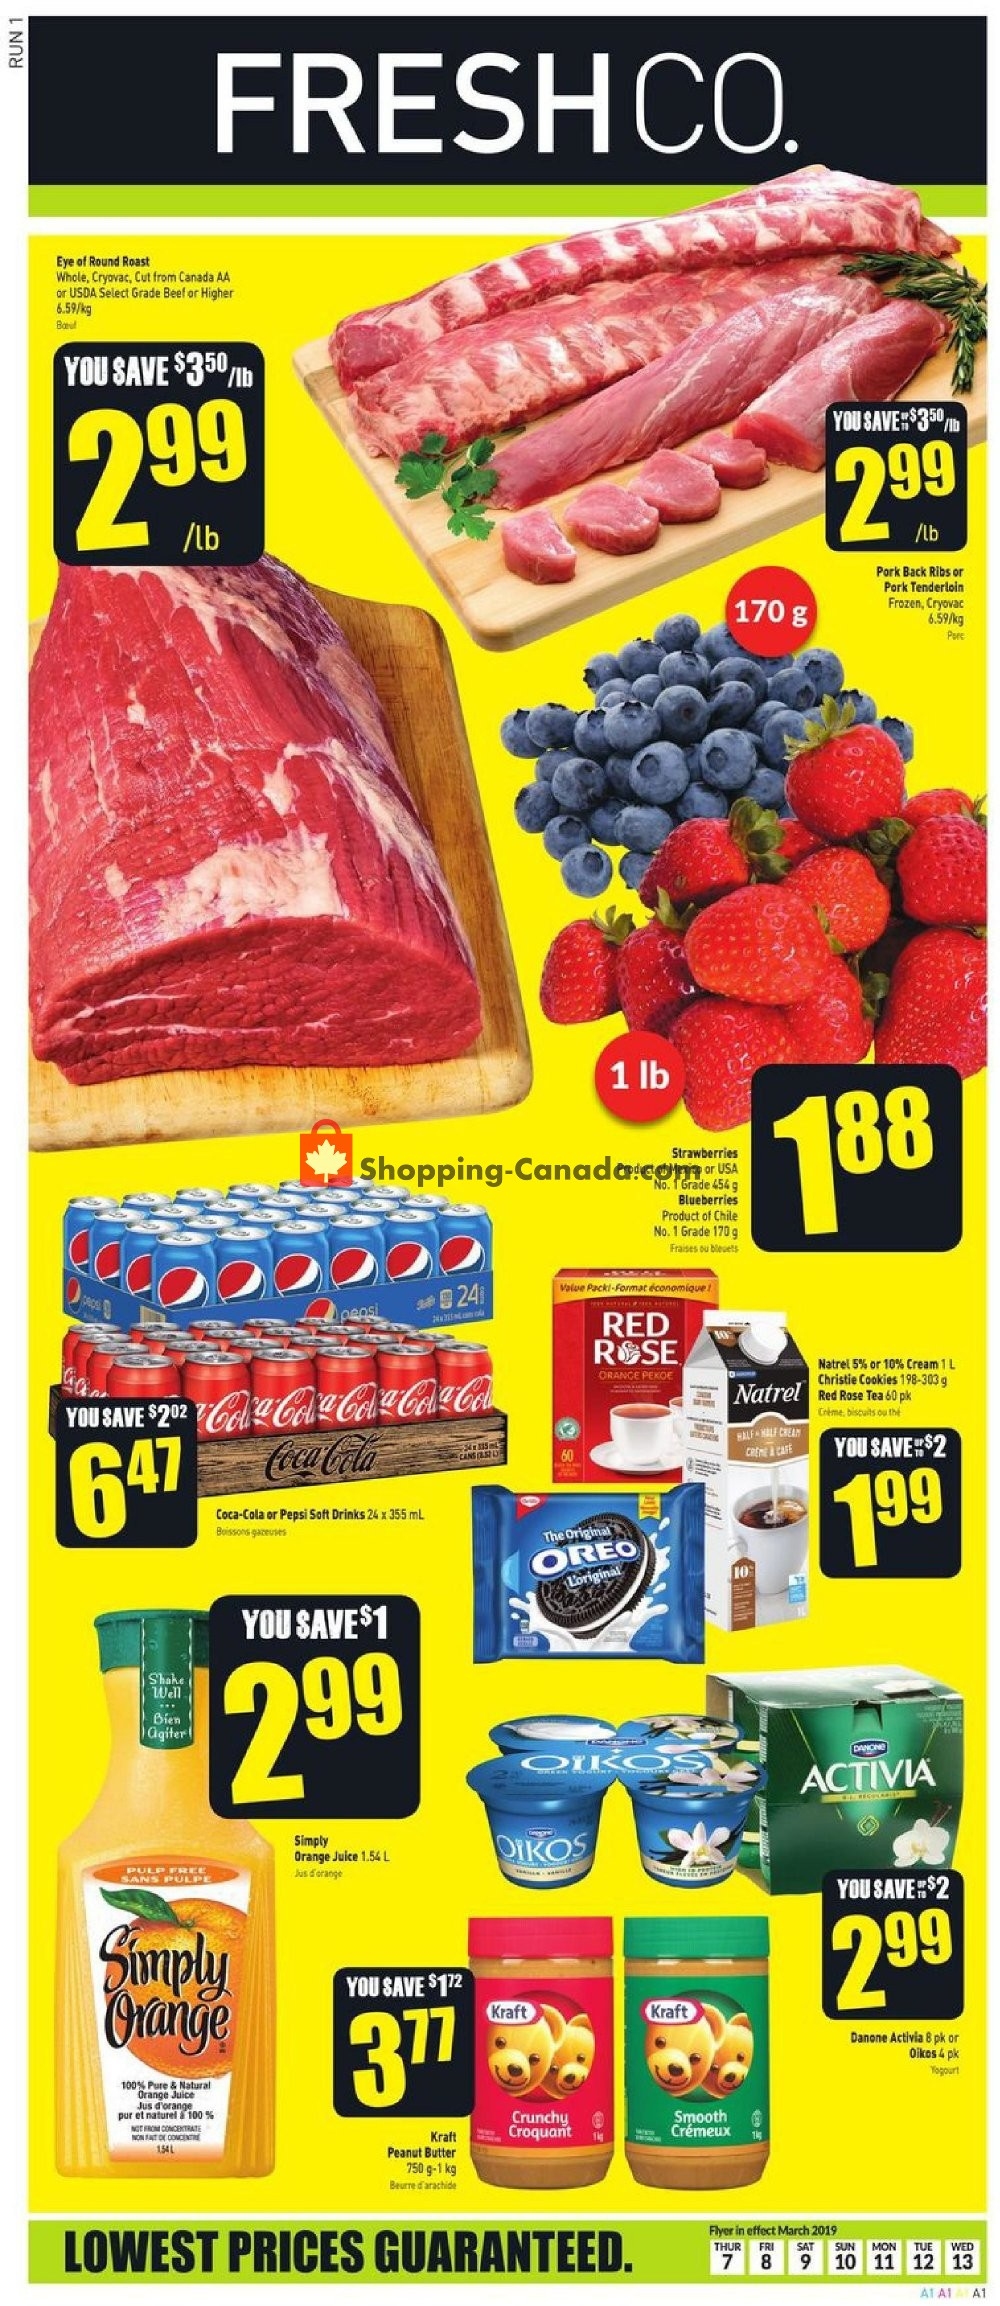 Flyer FreshCo Canada - from Thursday March 7, 2019 to Wednesday March 13, 2019